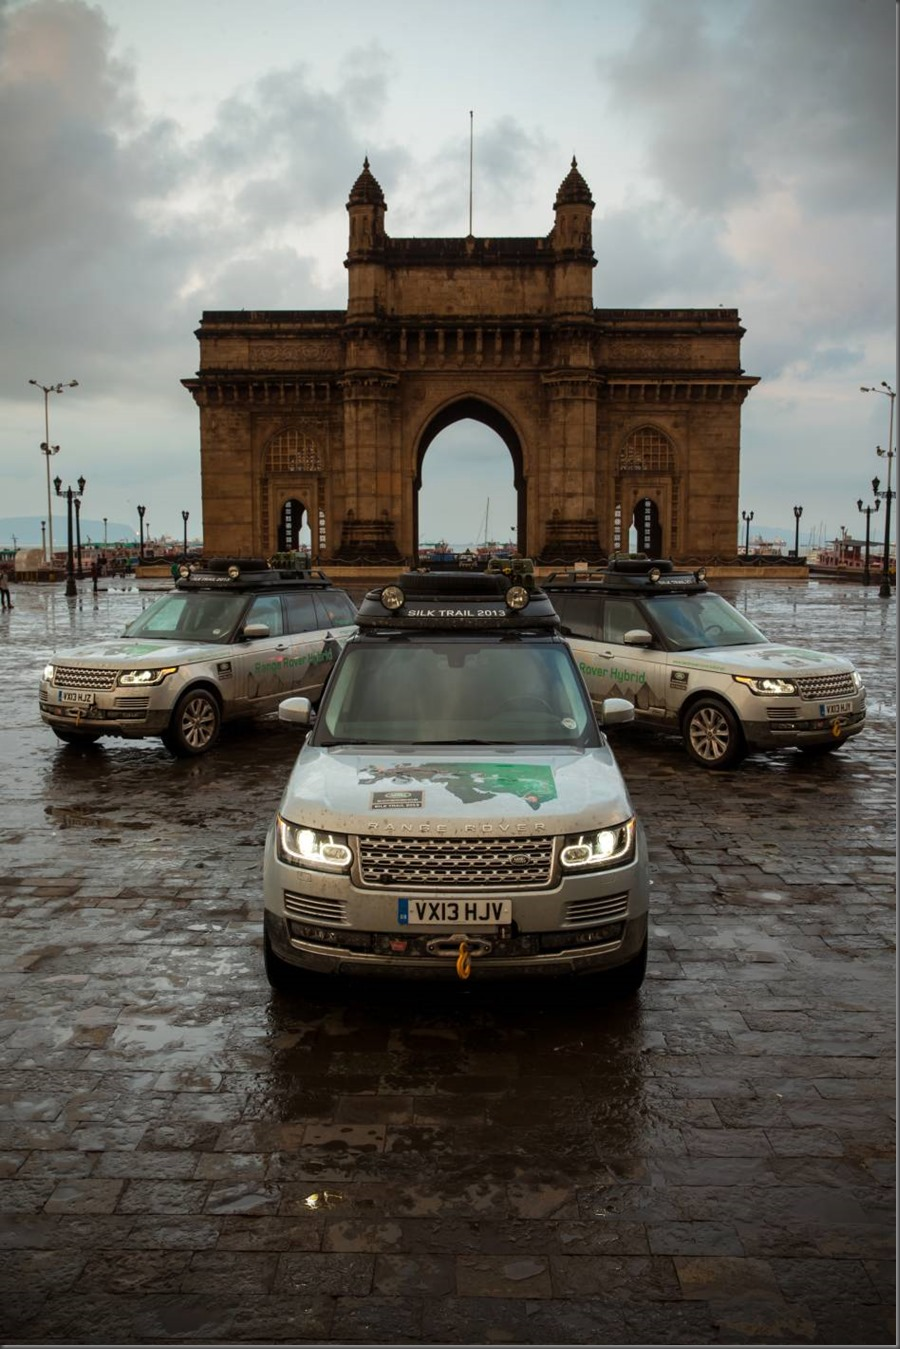 Land Rover completes world's first hybrid expedition along Silk Trail from Solihull to Mumbai (9)